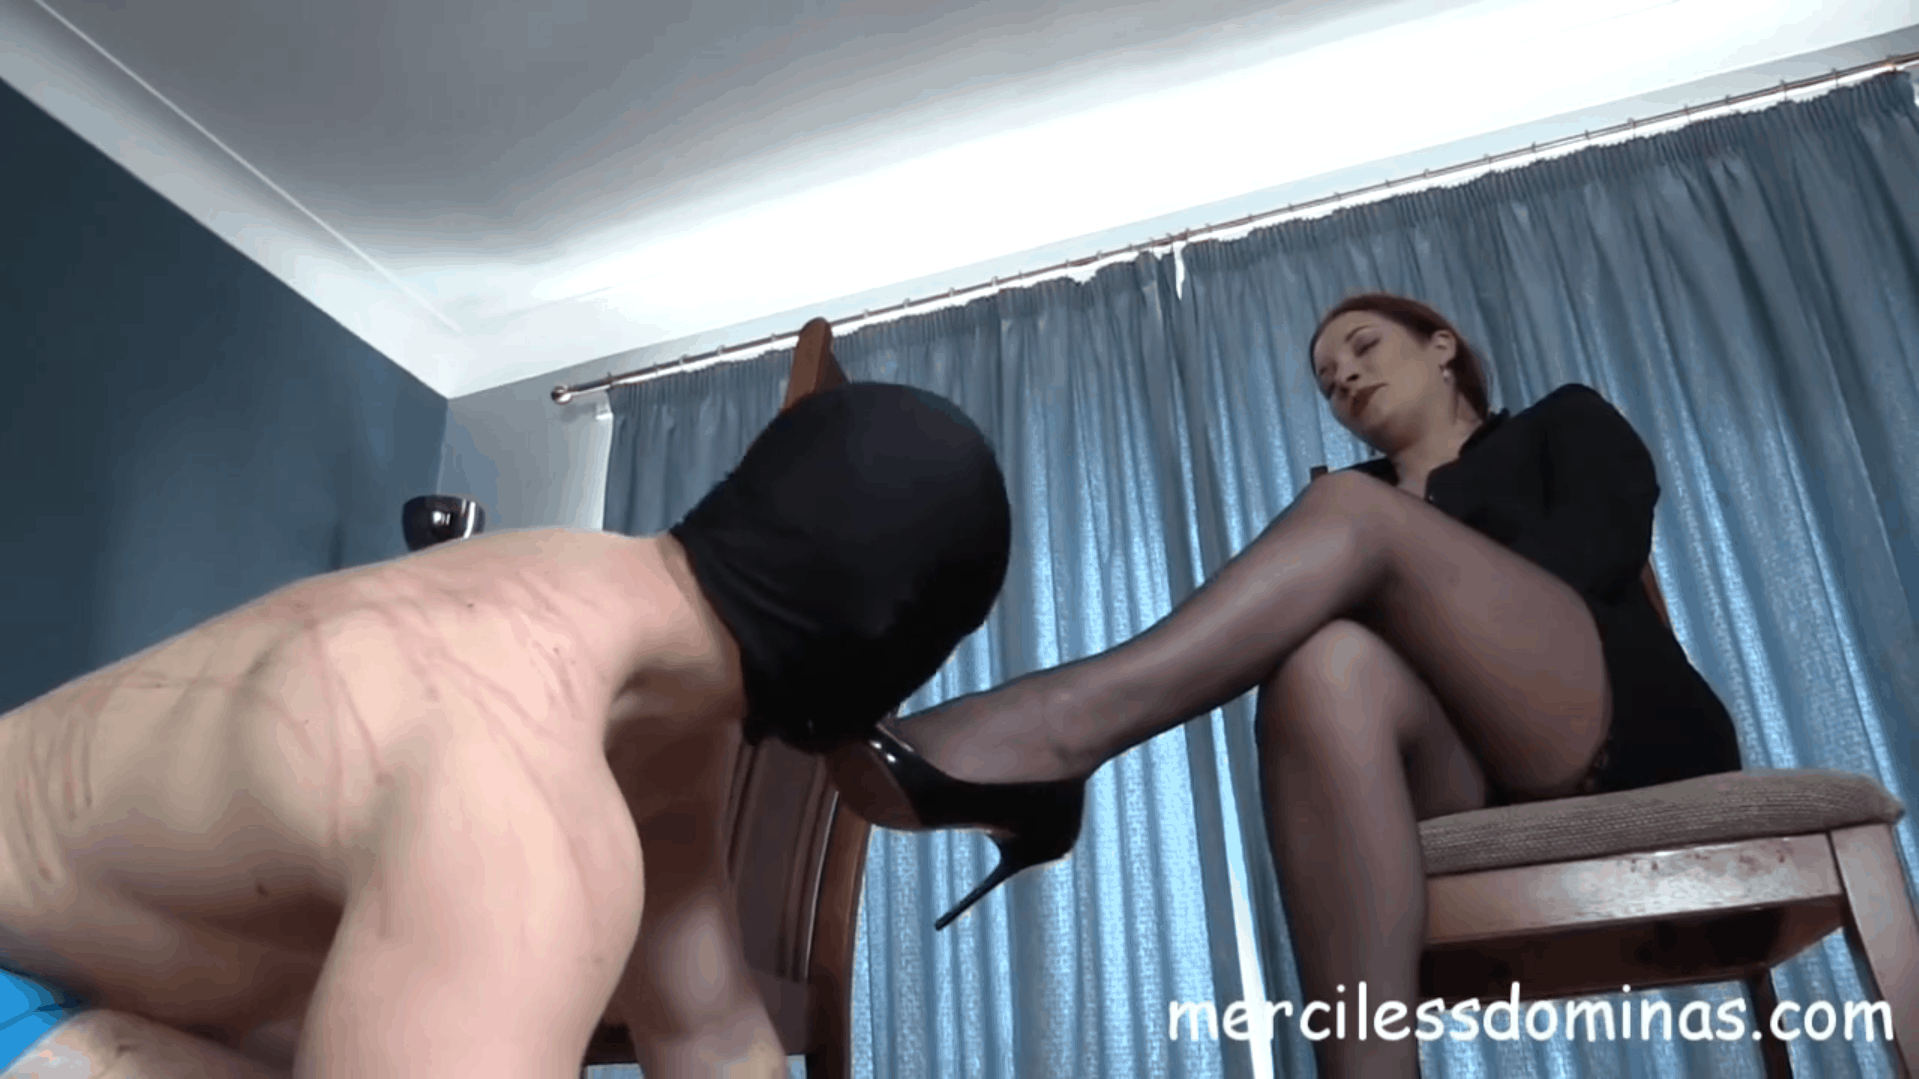 Dominated by Goddess Sophia